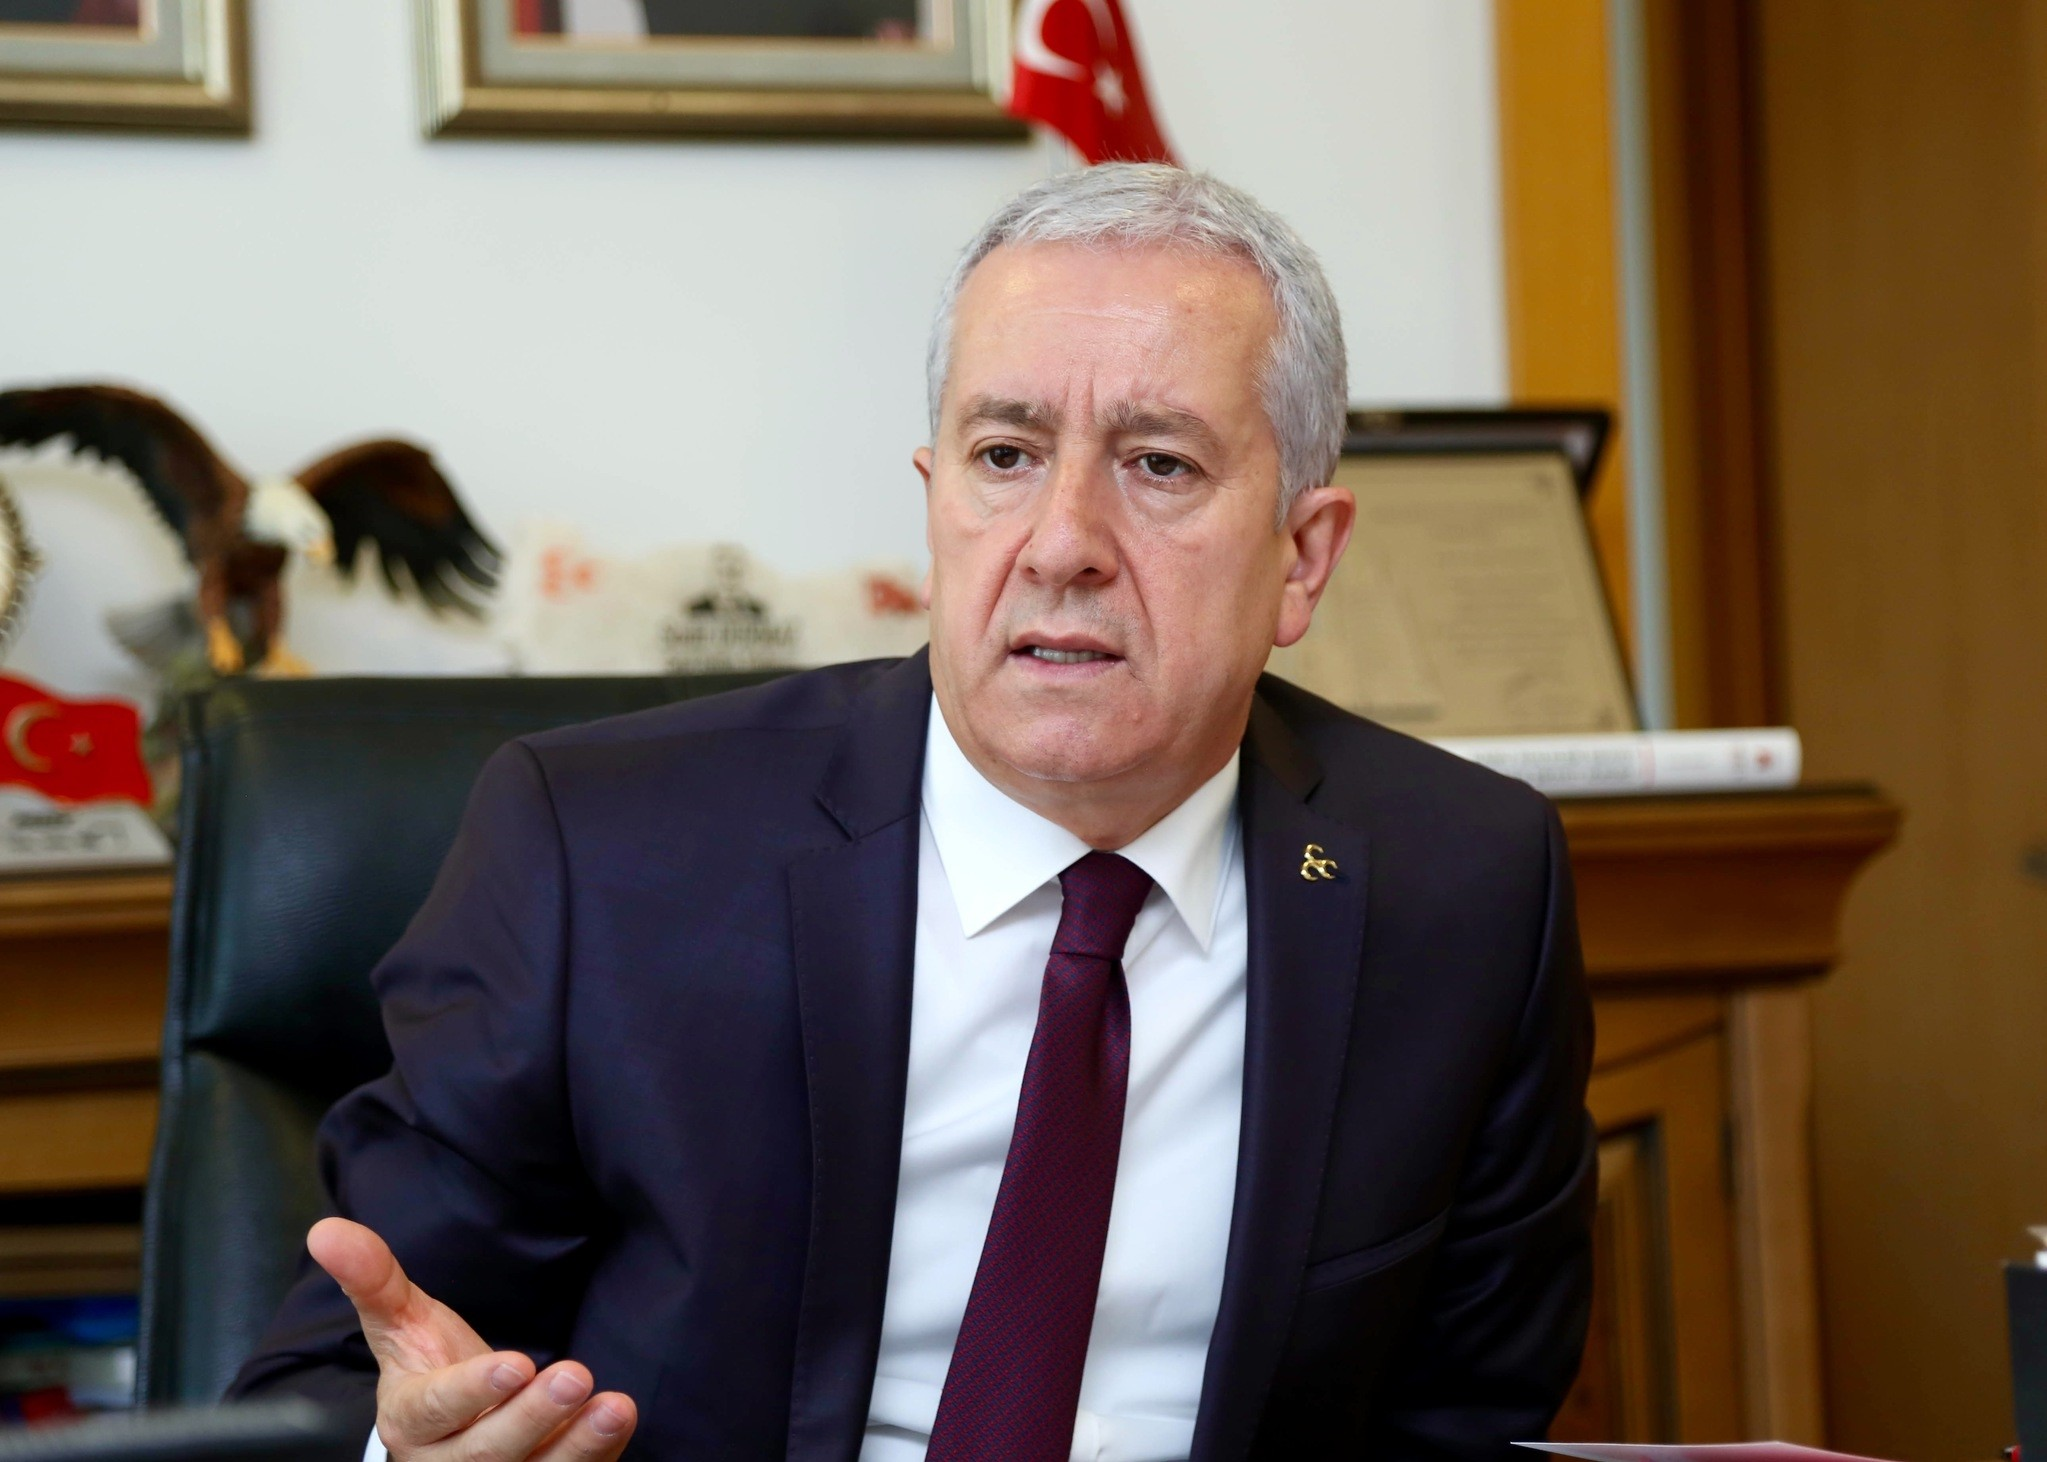 MHP Deputy Chair Durmaz said both AK Party and MHP have nationalistic sensitivities and a desire to implement a more powerful administrative system that will be able to overcome all sorts of threats.